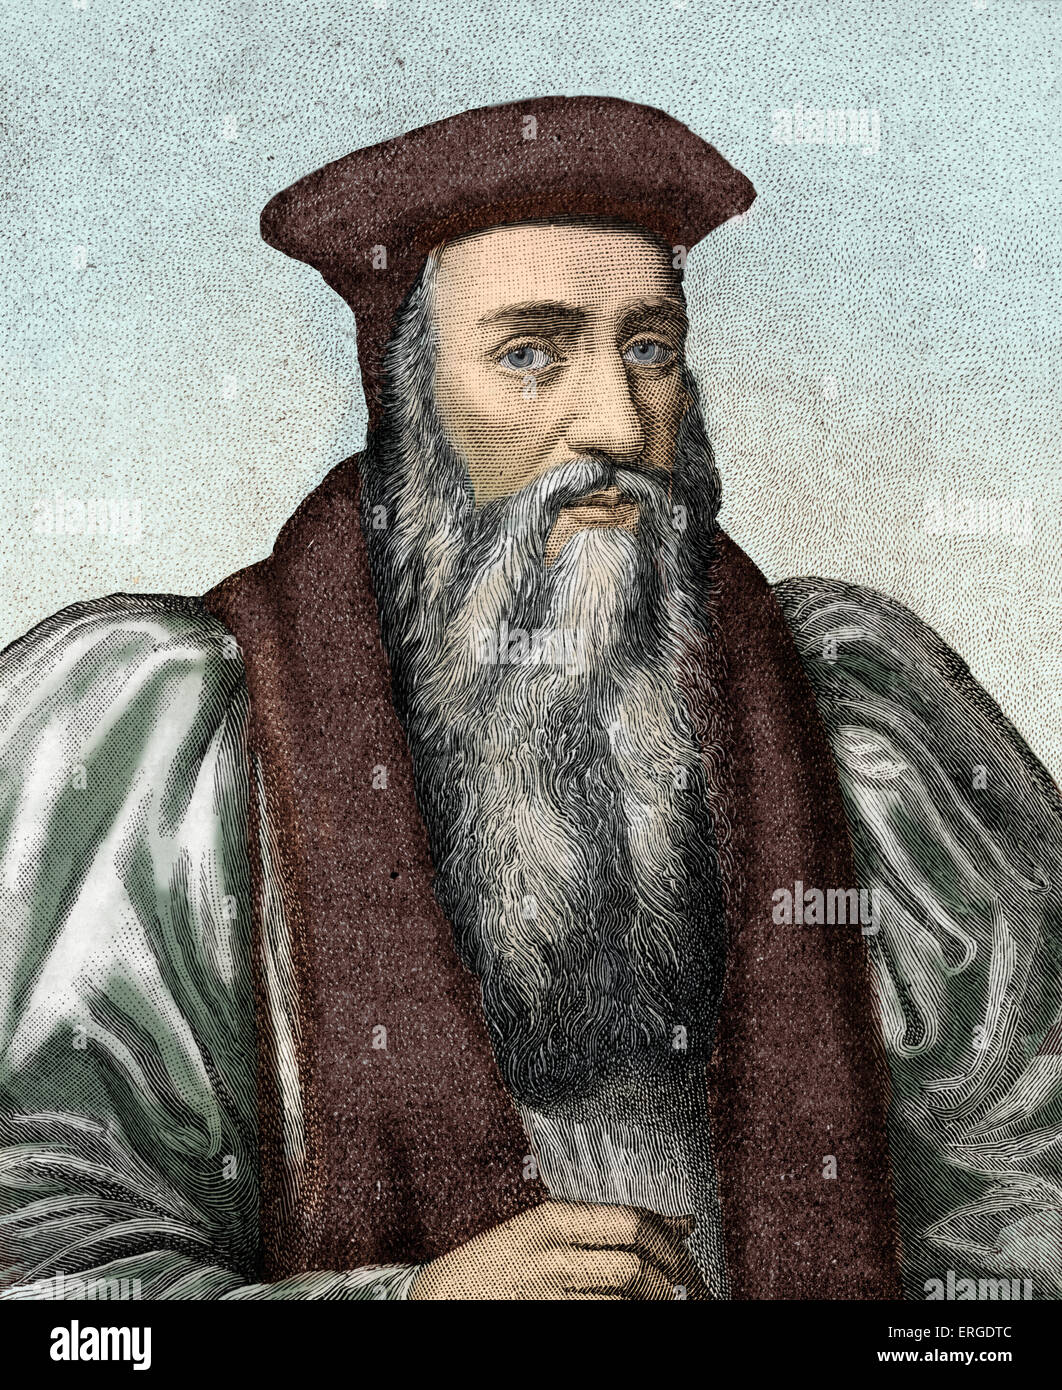 Archbishop Thomas Cranmer. Protestant reformer and Archbishop of Canterbury during the reigns of Henry VIII, Edward - Stock Image